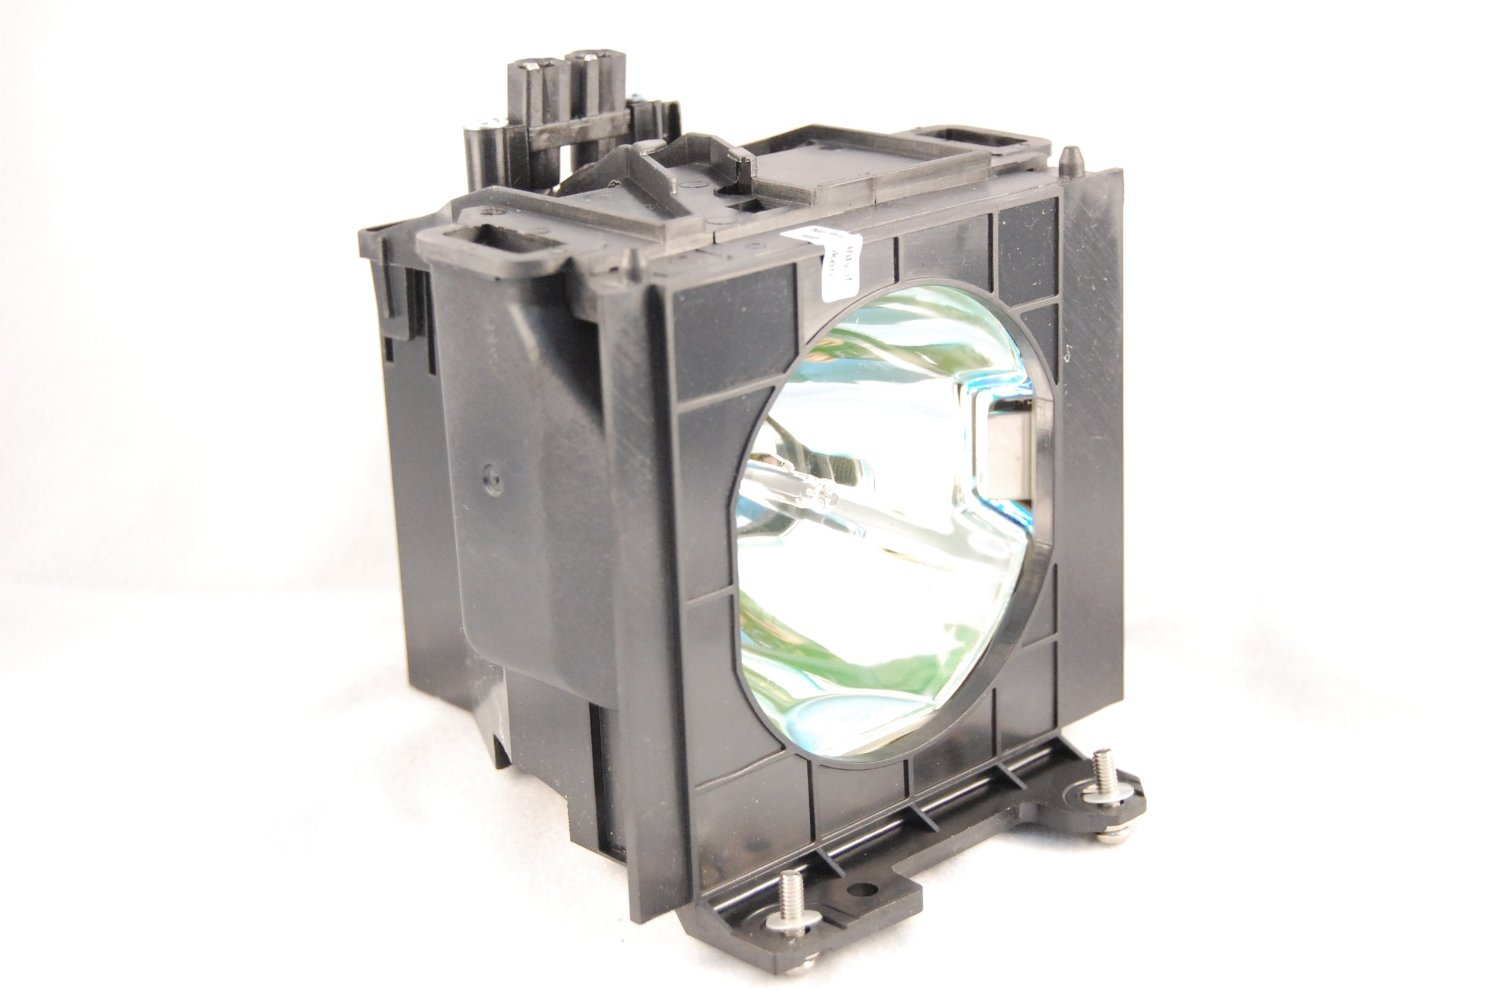 ET-LAD35L ETLAD35L LAD35L For Panasonic PT-D3500 PT-D3500U PT-D3500E TH-D3500 TH-D3500U D3500U Projector Lamp Bulb with housing free shipping projector lamp et lad35 housing for panasonic pt d3500 pt d3500u th d3500